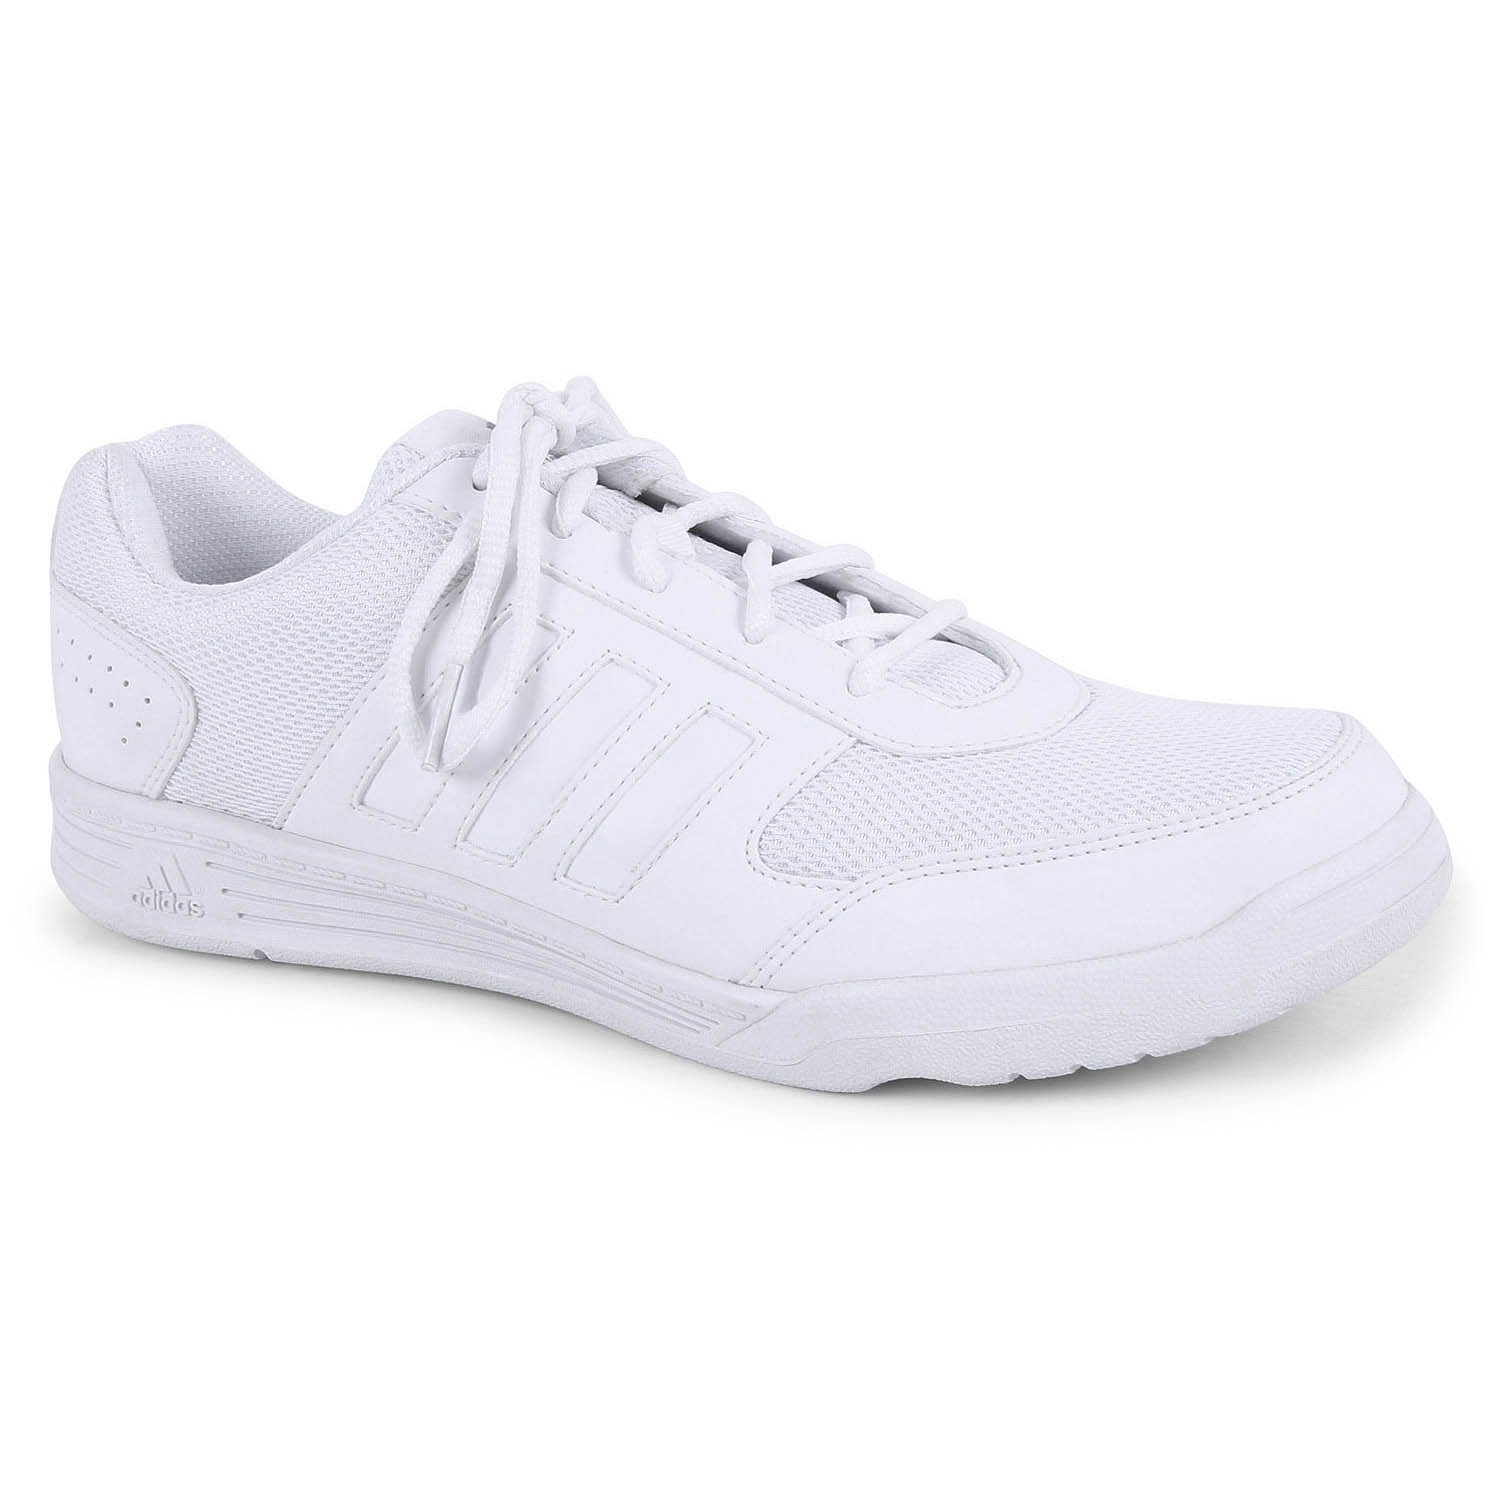 21a041c28ce5 Adidas White School Shoes - Sports Shoes Kids Range (3 to 12 Years ...